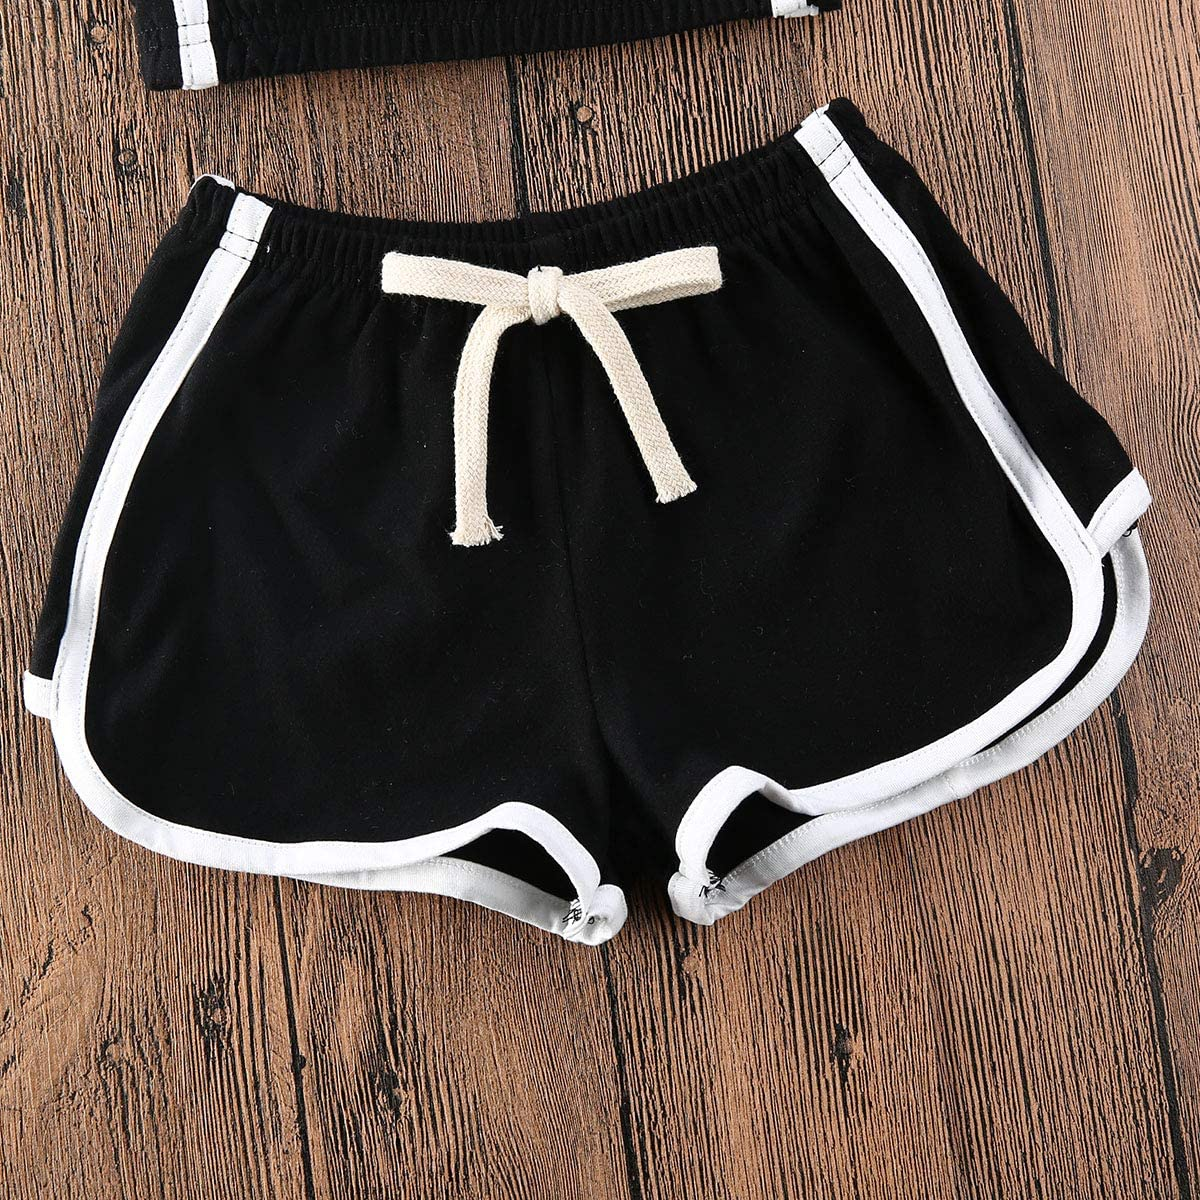 Ilyhaha Toddler Baby Girl Summer Outfits Cotton Strap Crop Top Halter+Striped Shorts Pants 2Pcs Sports Clothes Set